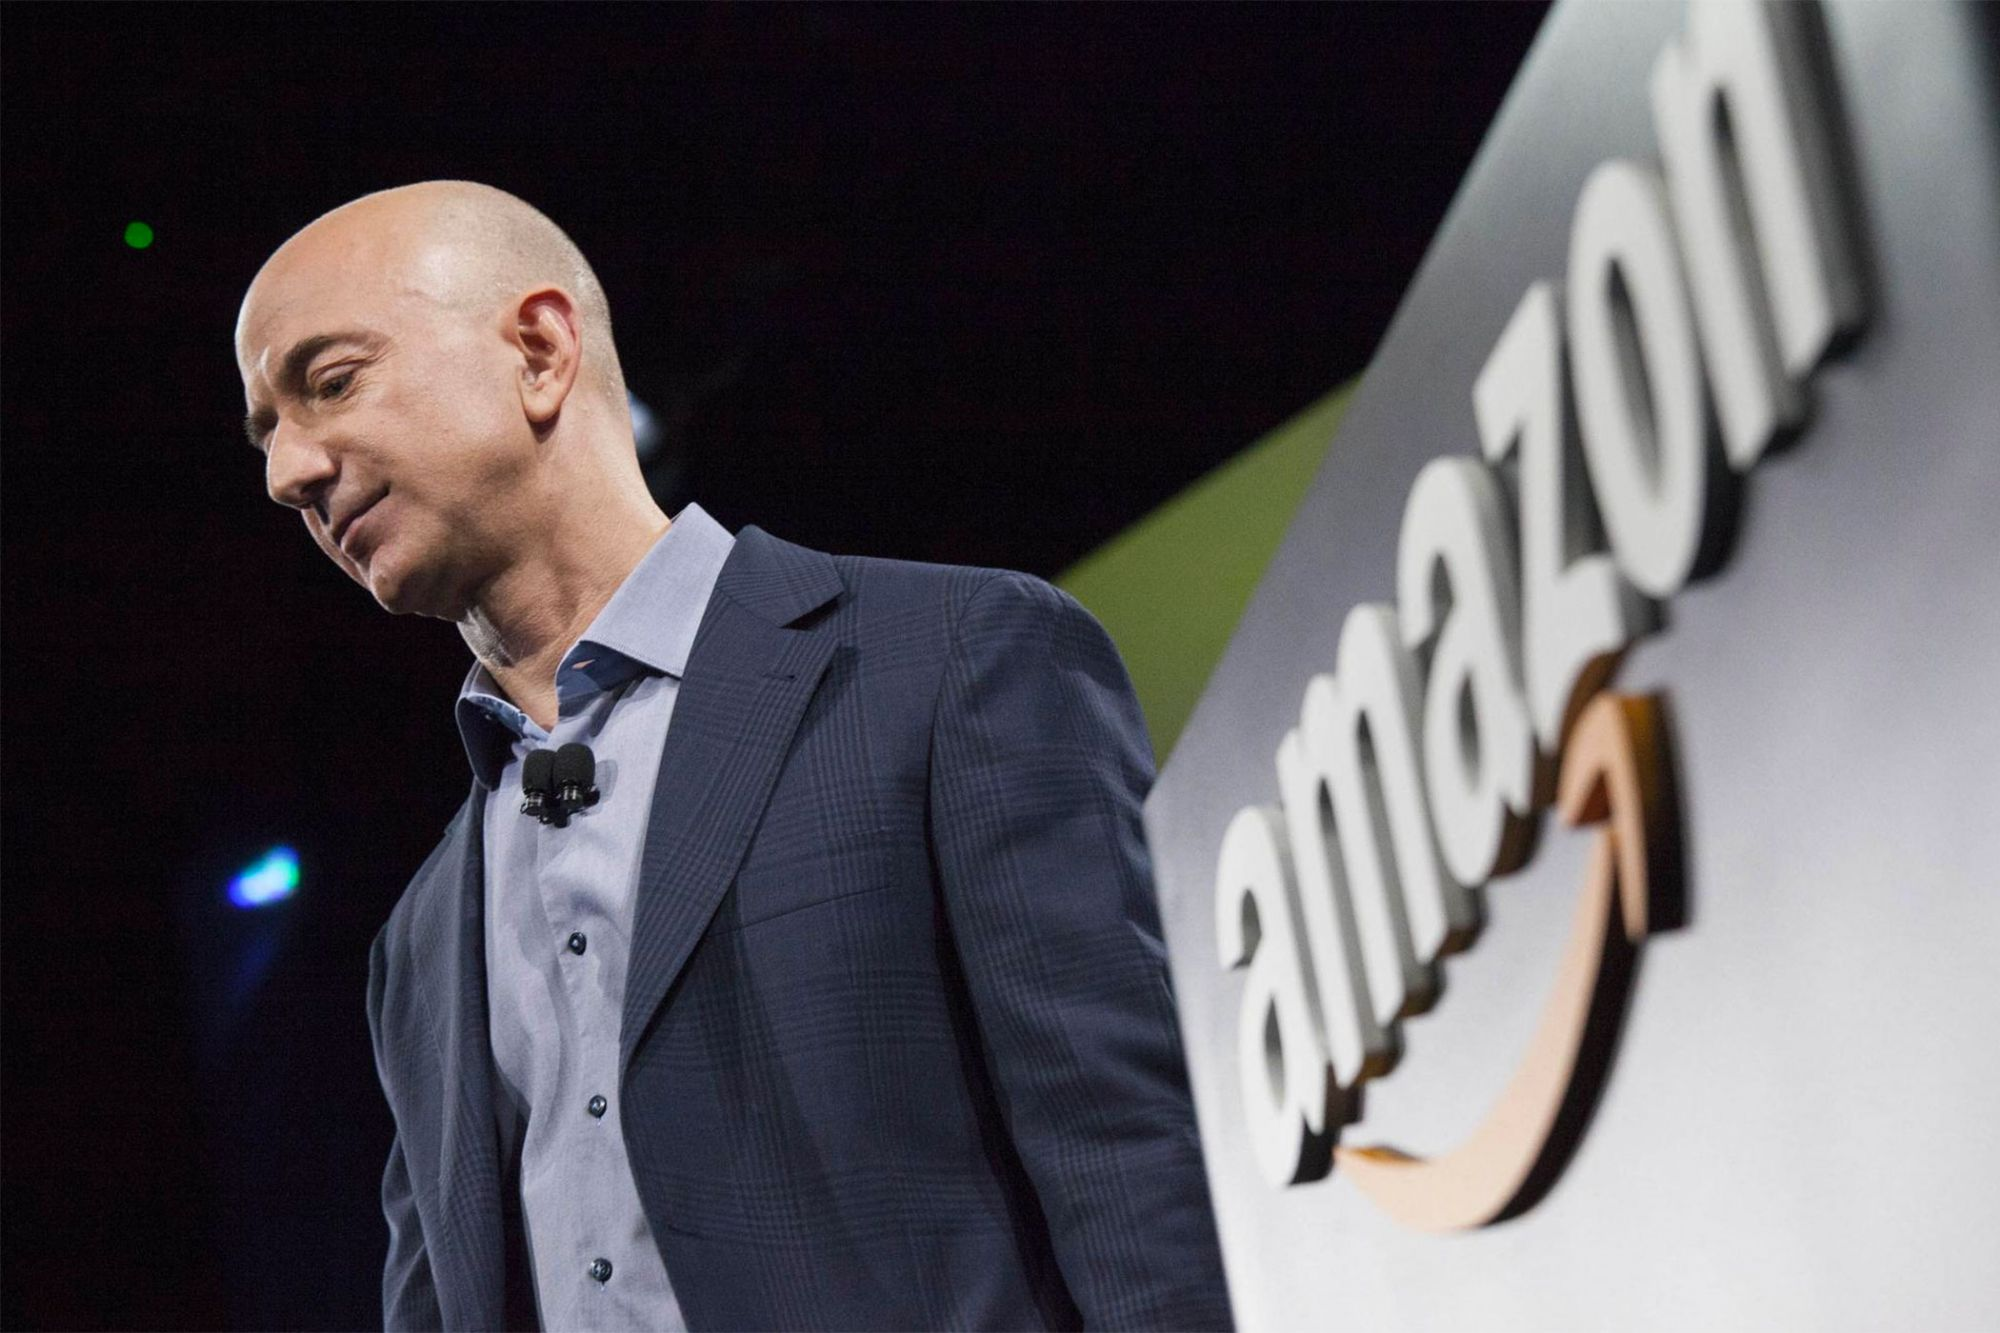 Hacking of Jeff Bezos' Phone is Tied to Saudi Prince, Reports 'The Financial Times'